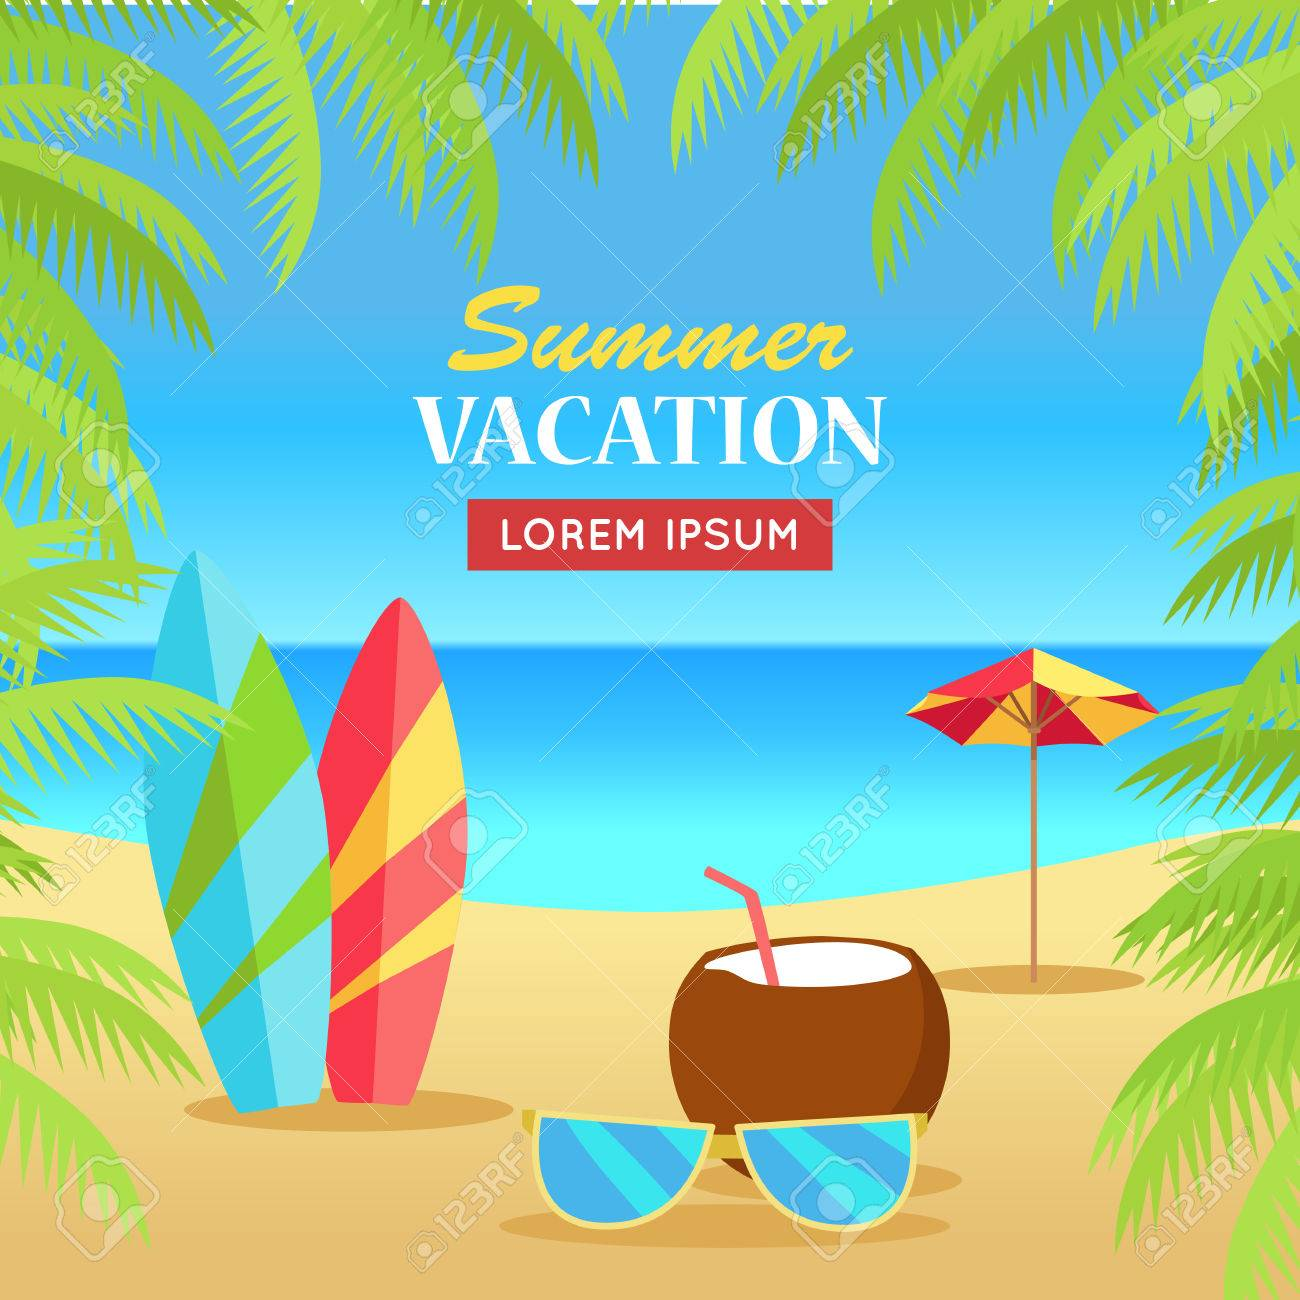 7c850561ad3 Summer vacation concept banner. Leisure on tropical sunny beach with palm  trees. Surfboards